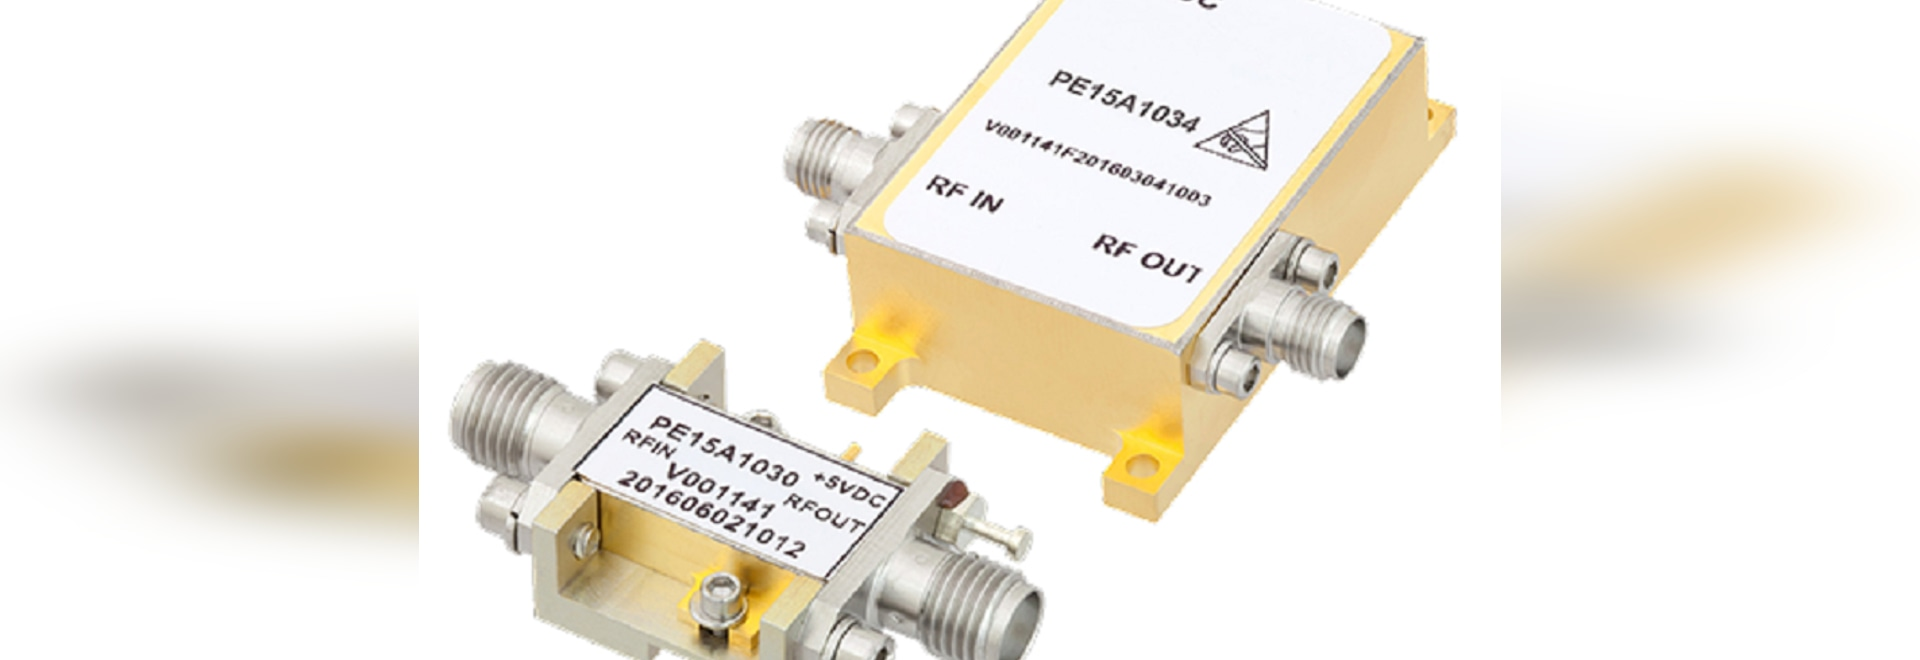 Low Phase Noise Amplifier for Microwave and Millimeter Wave Applications Announced by Pasternack